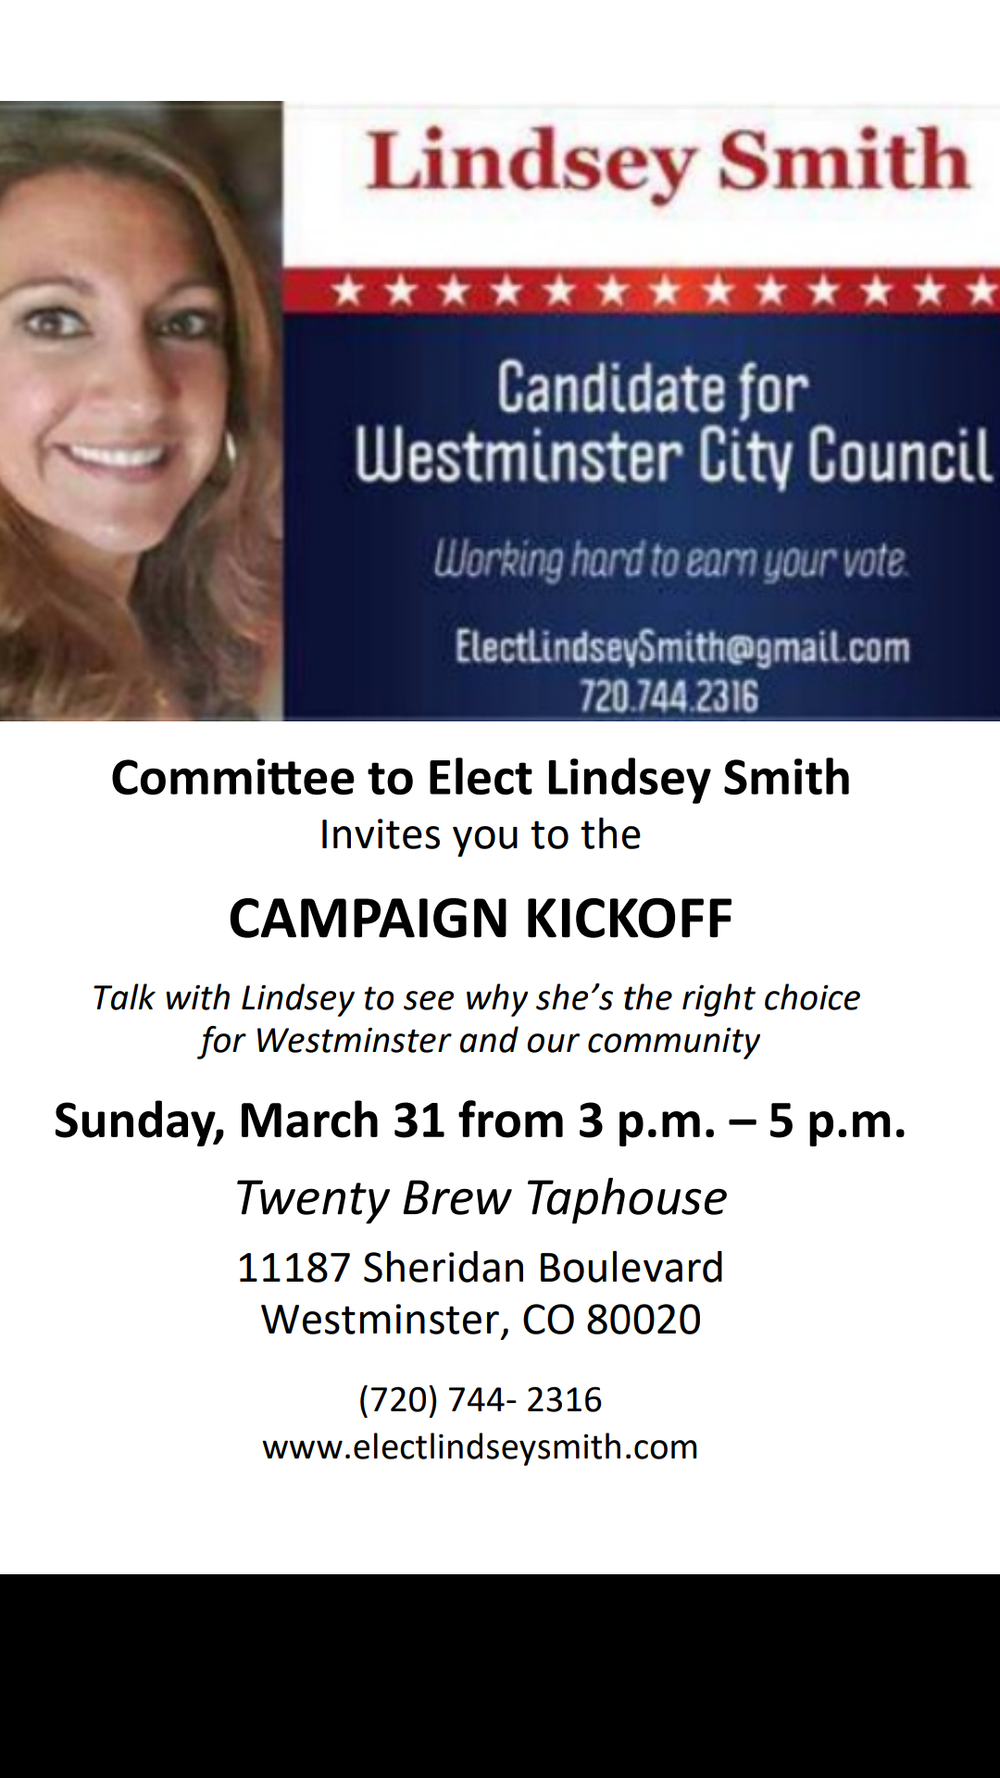 Campaign Kickoff March 31 @ 3 p.m. @ Twenty Brew TapHouse